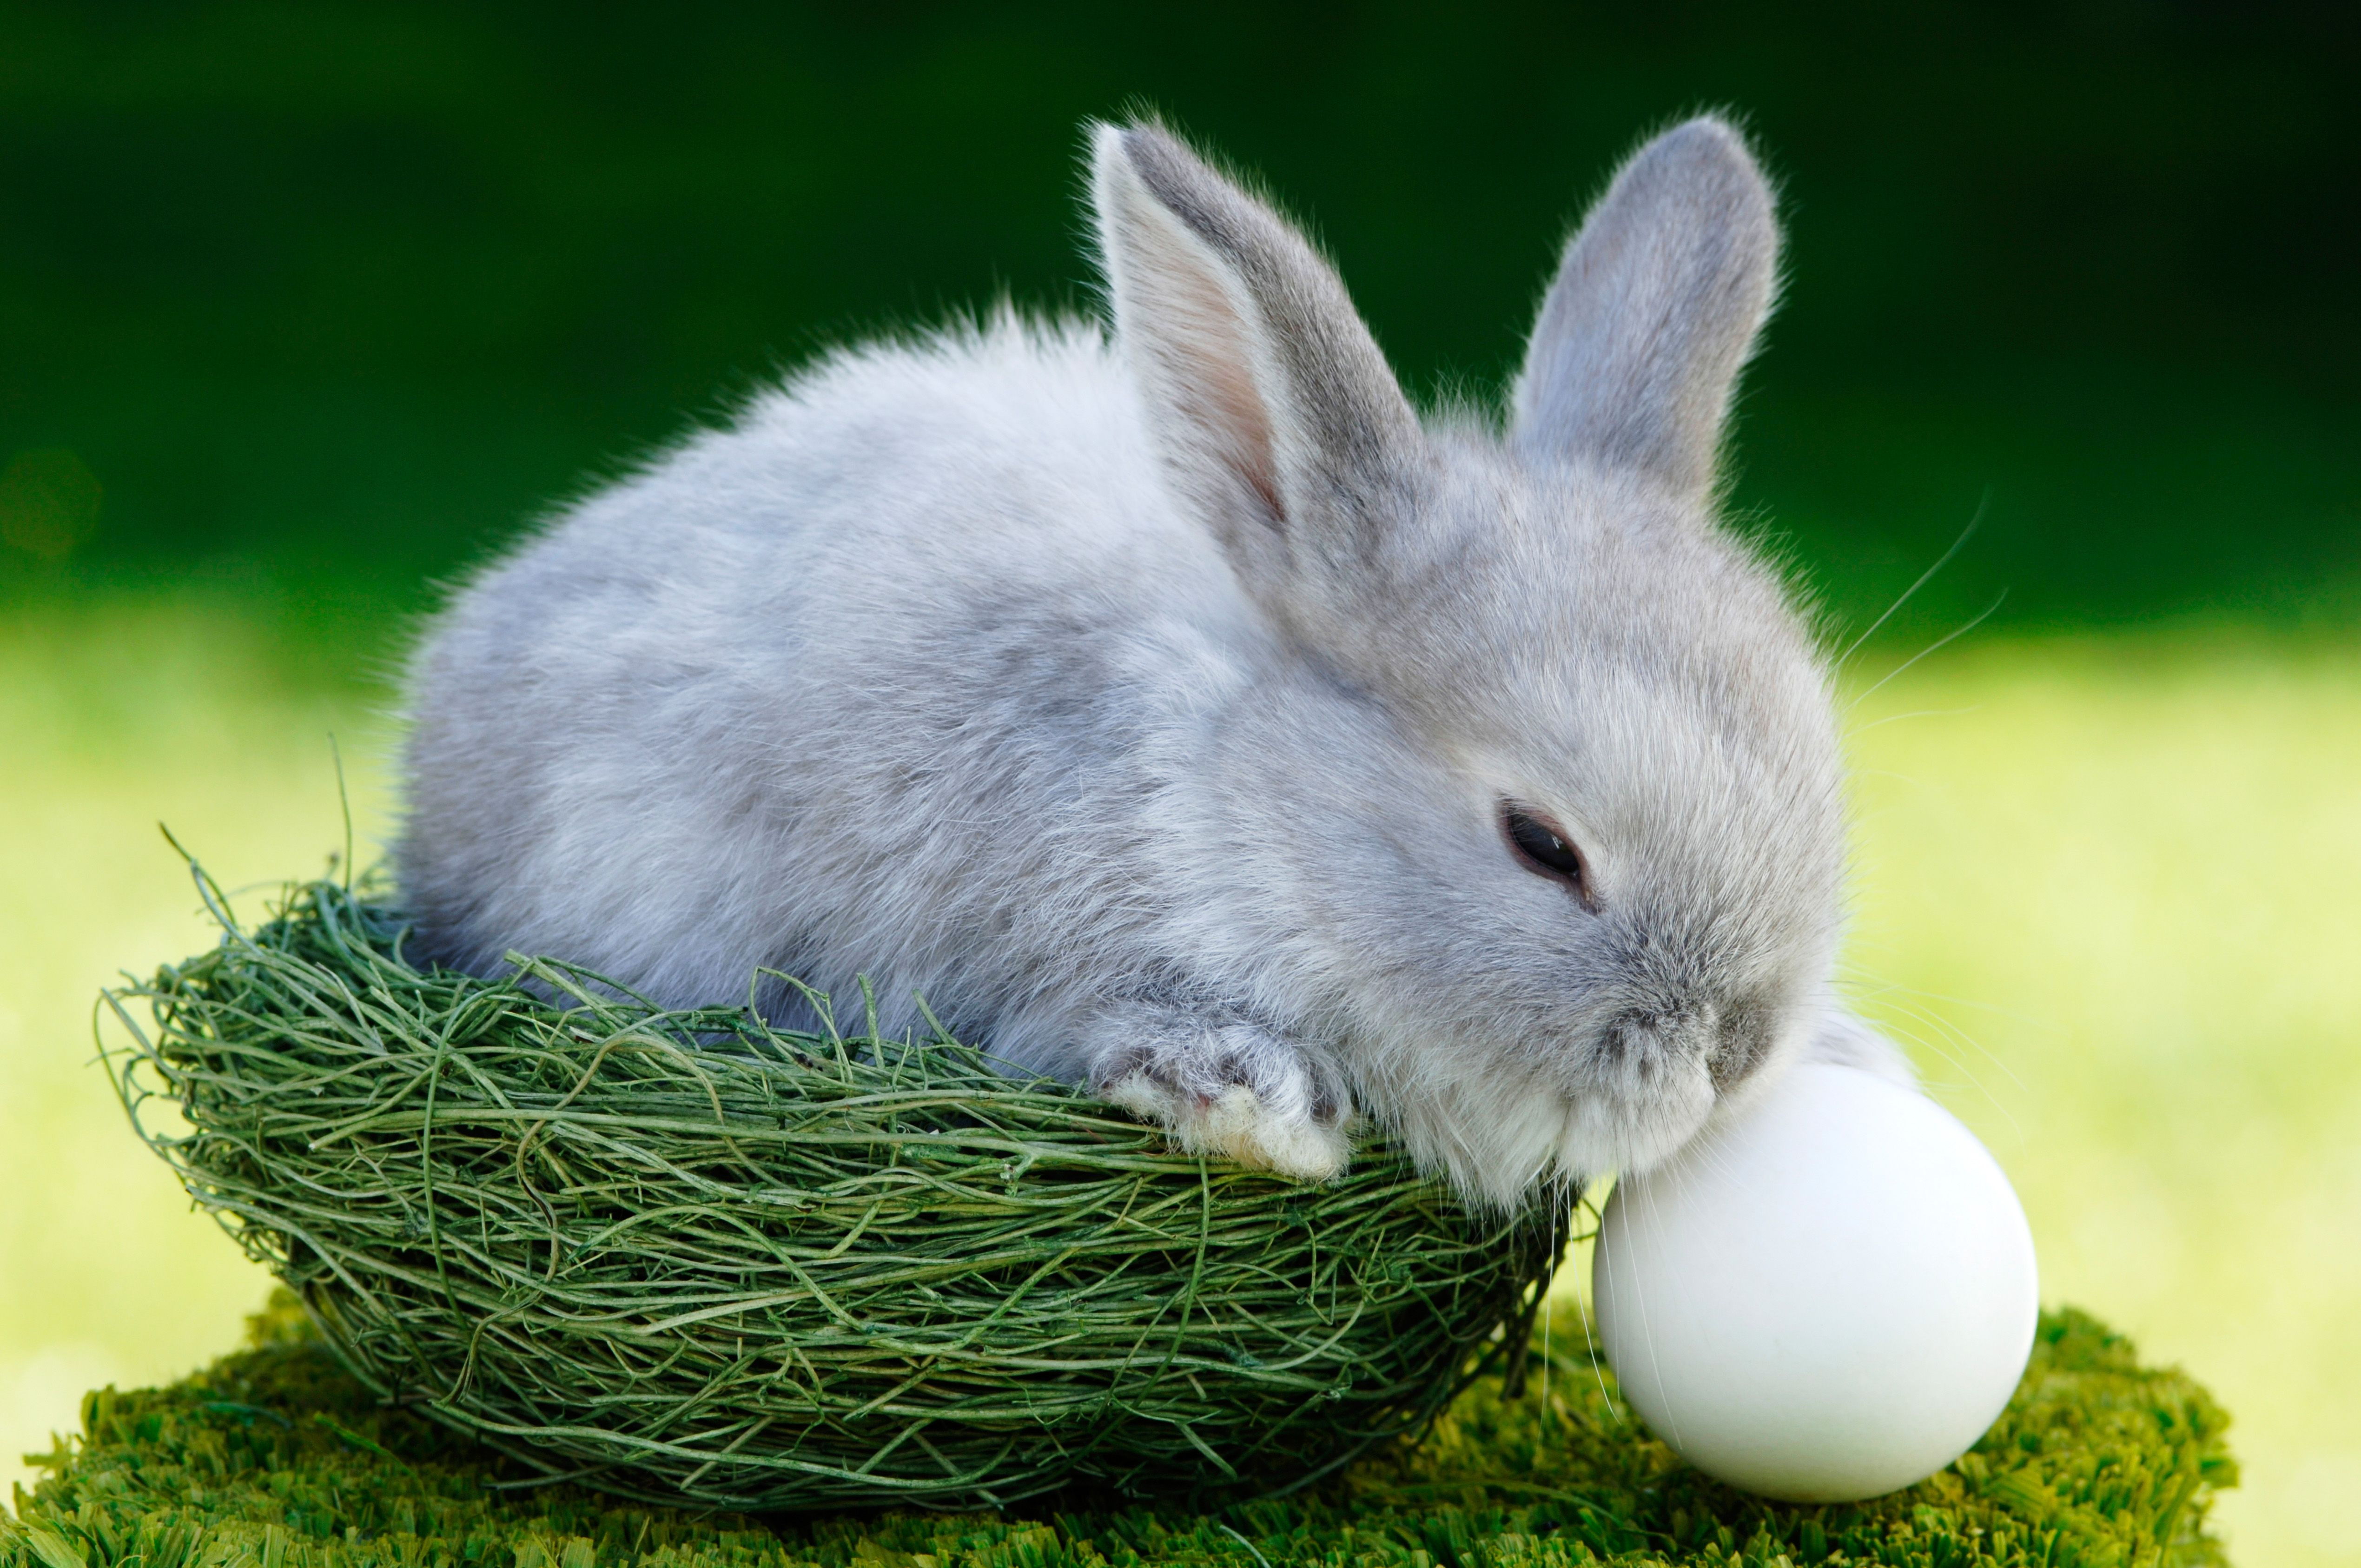 Do Bunnies Lay Eggs Why Is There An Easter Bunny If Rabbits Do